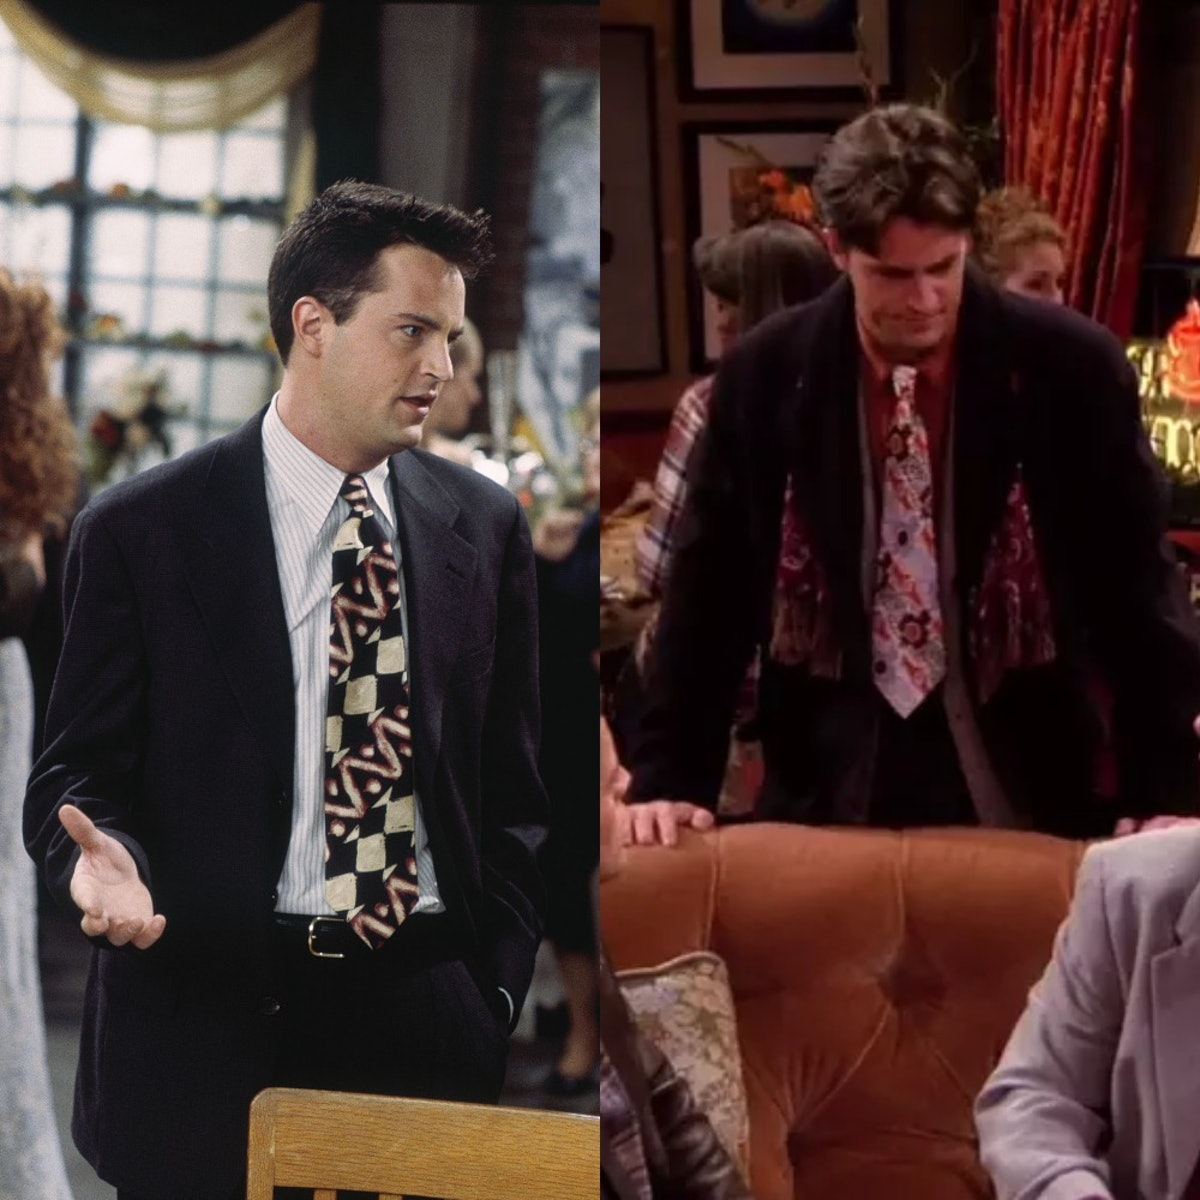 Chandler Bing's ties and chunky vests are another Friends Halloween costume